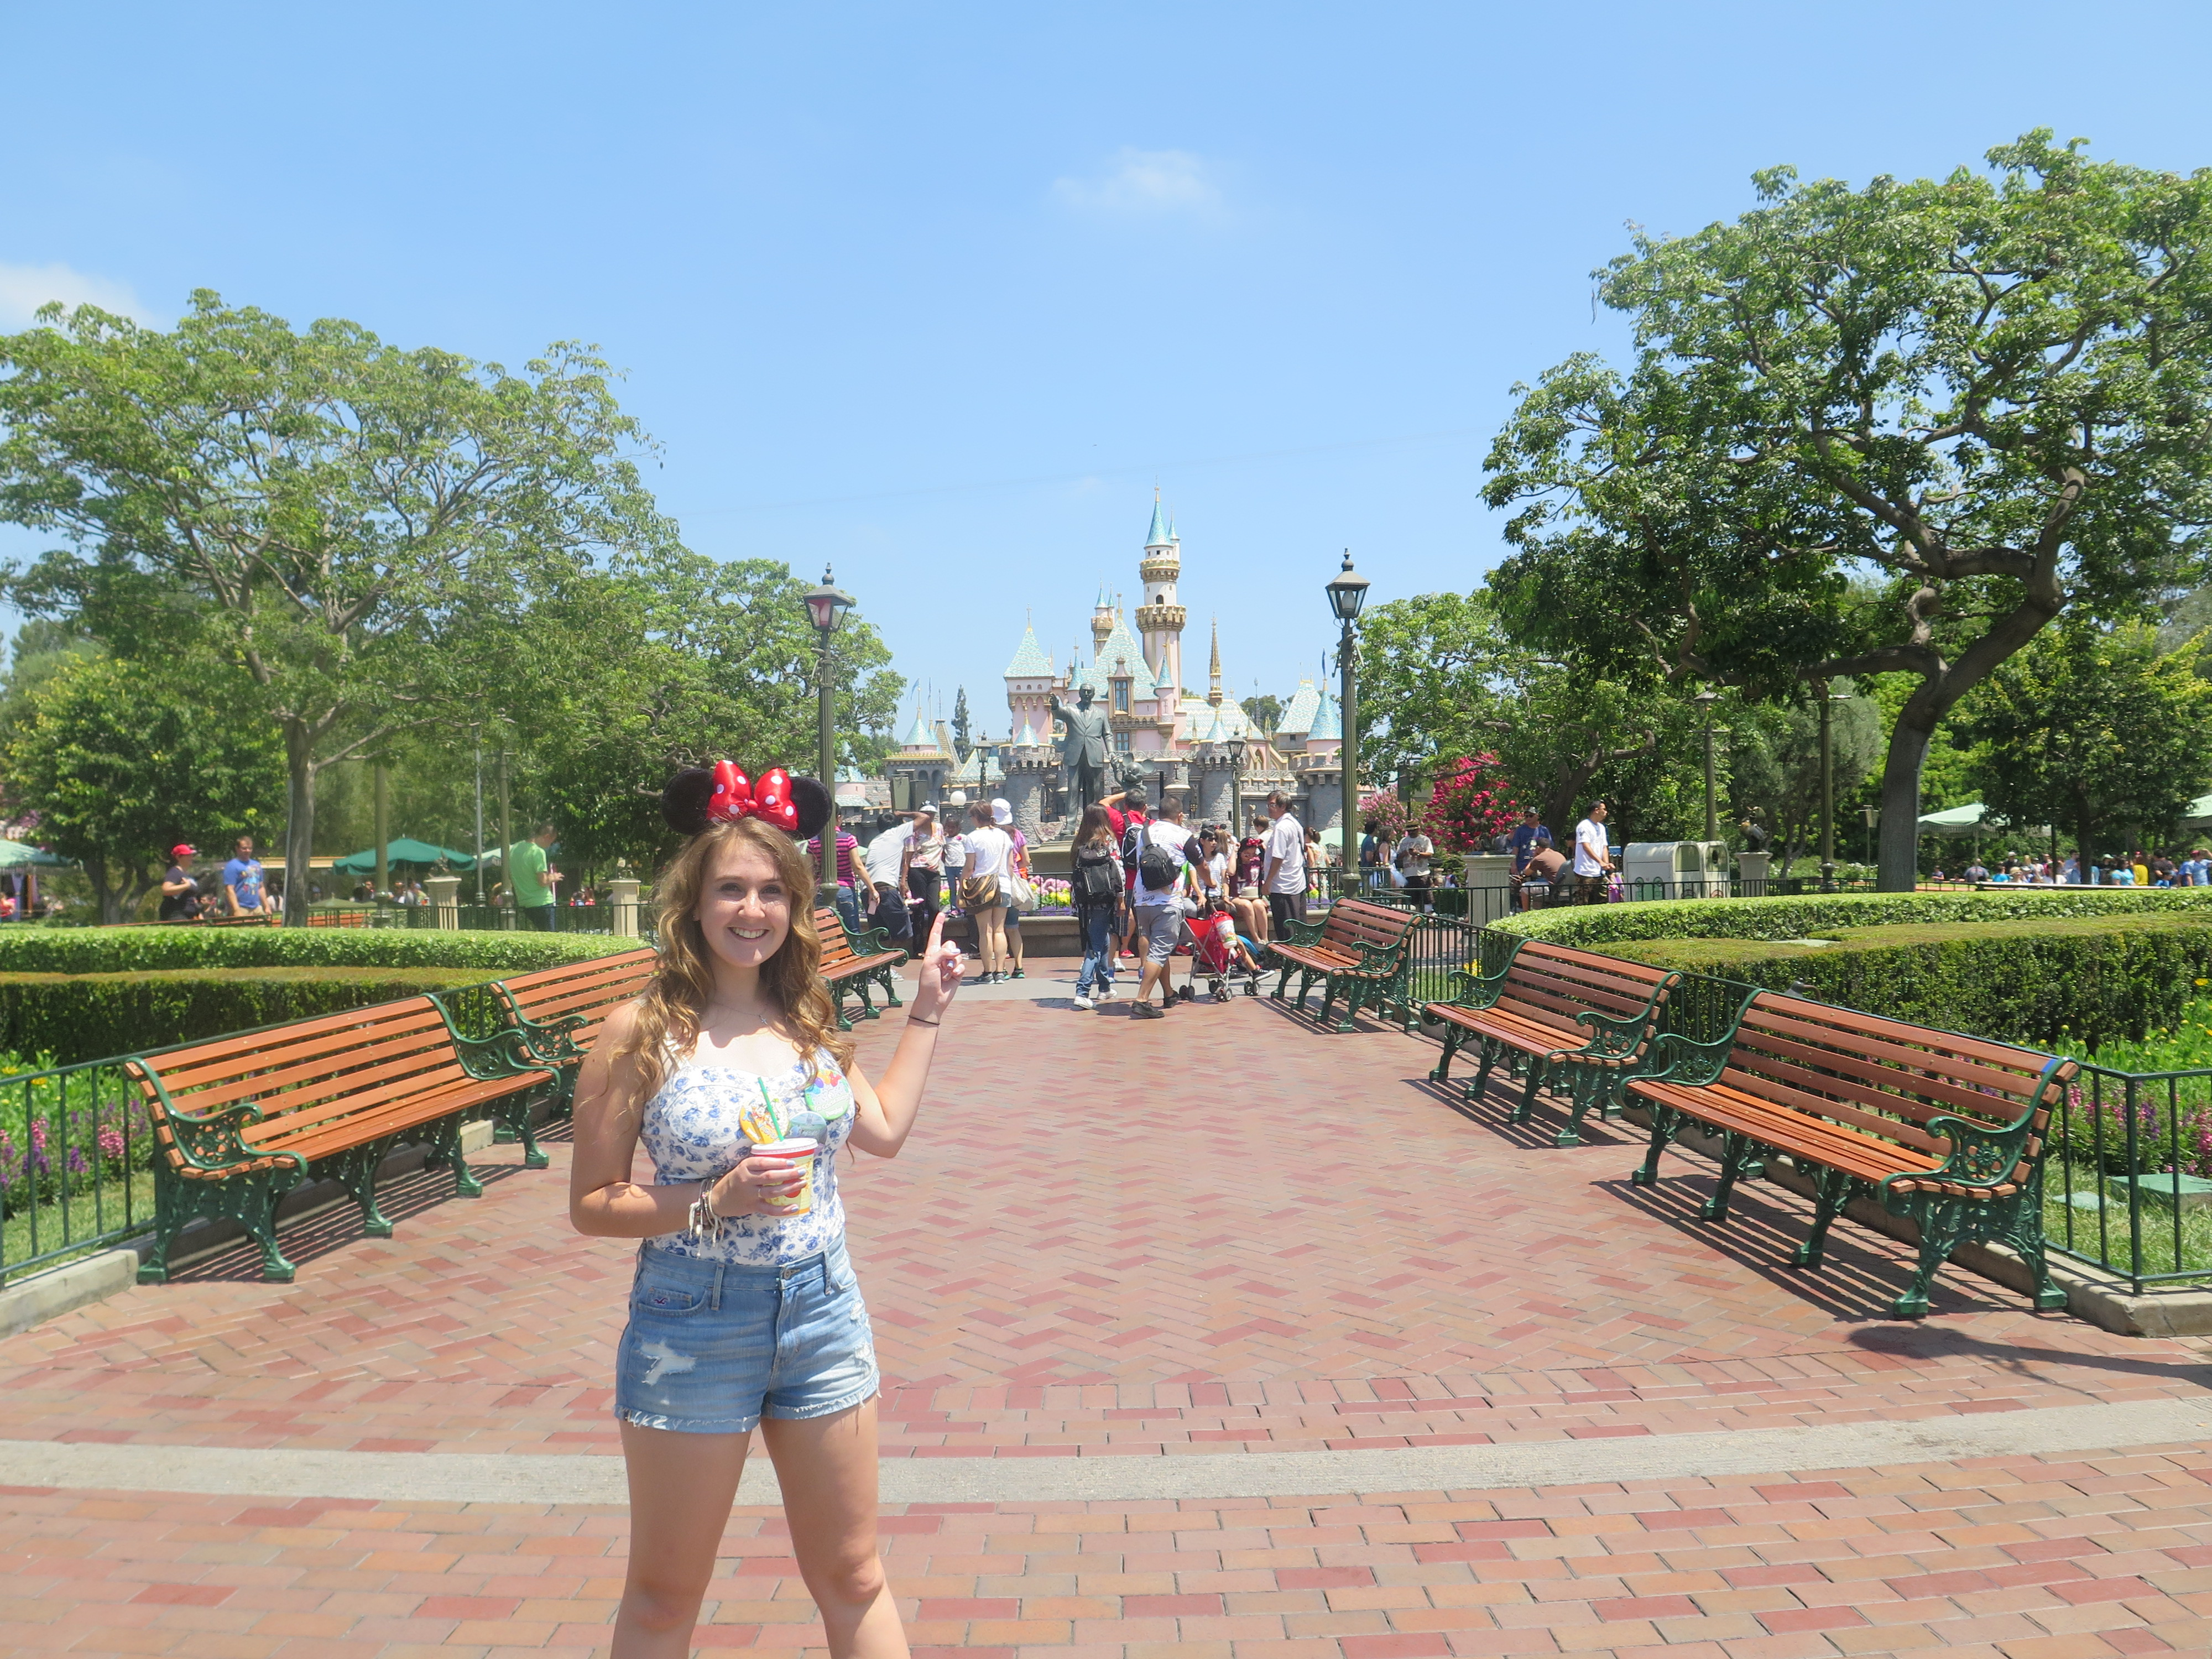 disneyland happiest place on earth Kyle21 disney world was once titled the happiest place on earth until it was retitled the most magical place on earth disneyland is now titled the happiest place on earth, and that's not true the top ten.